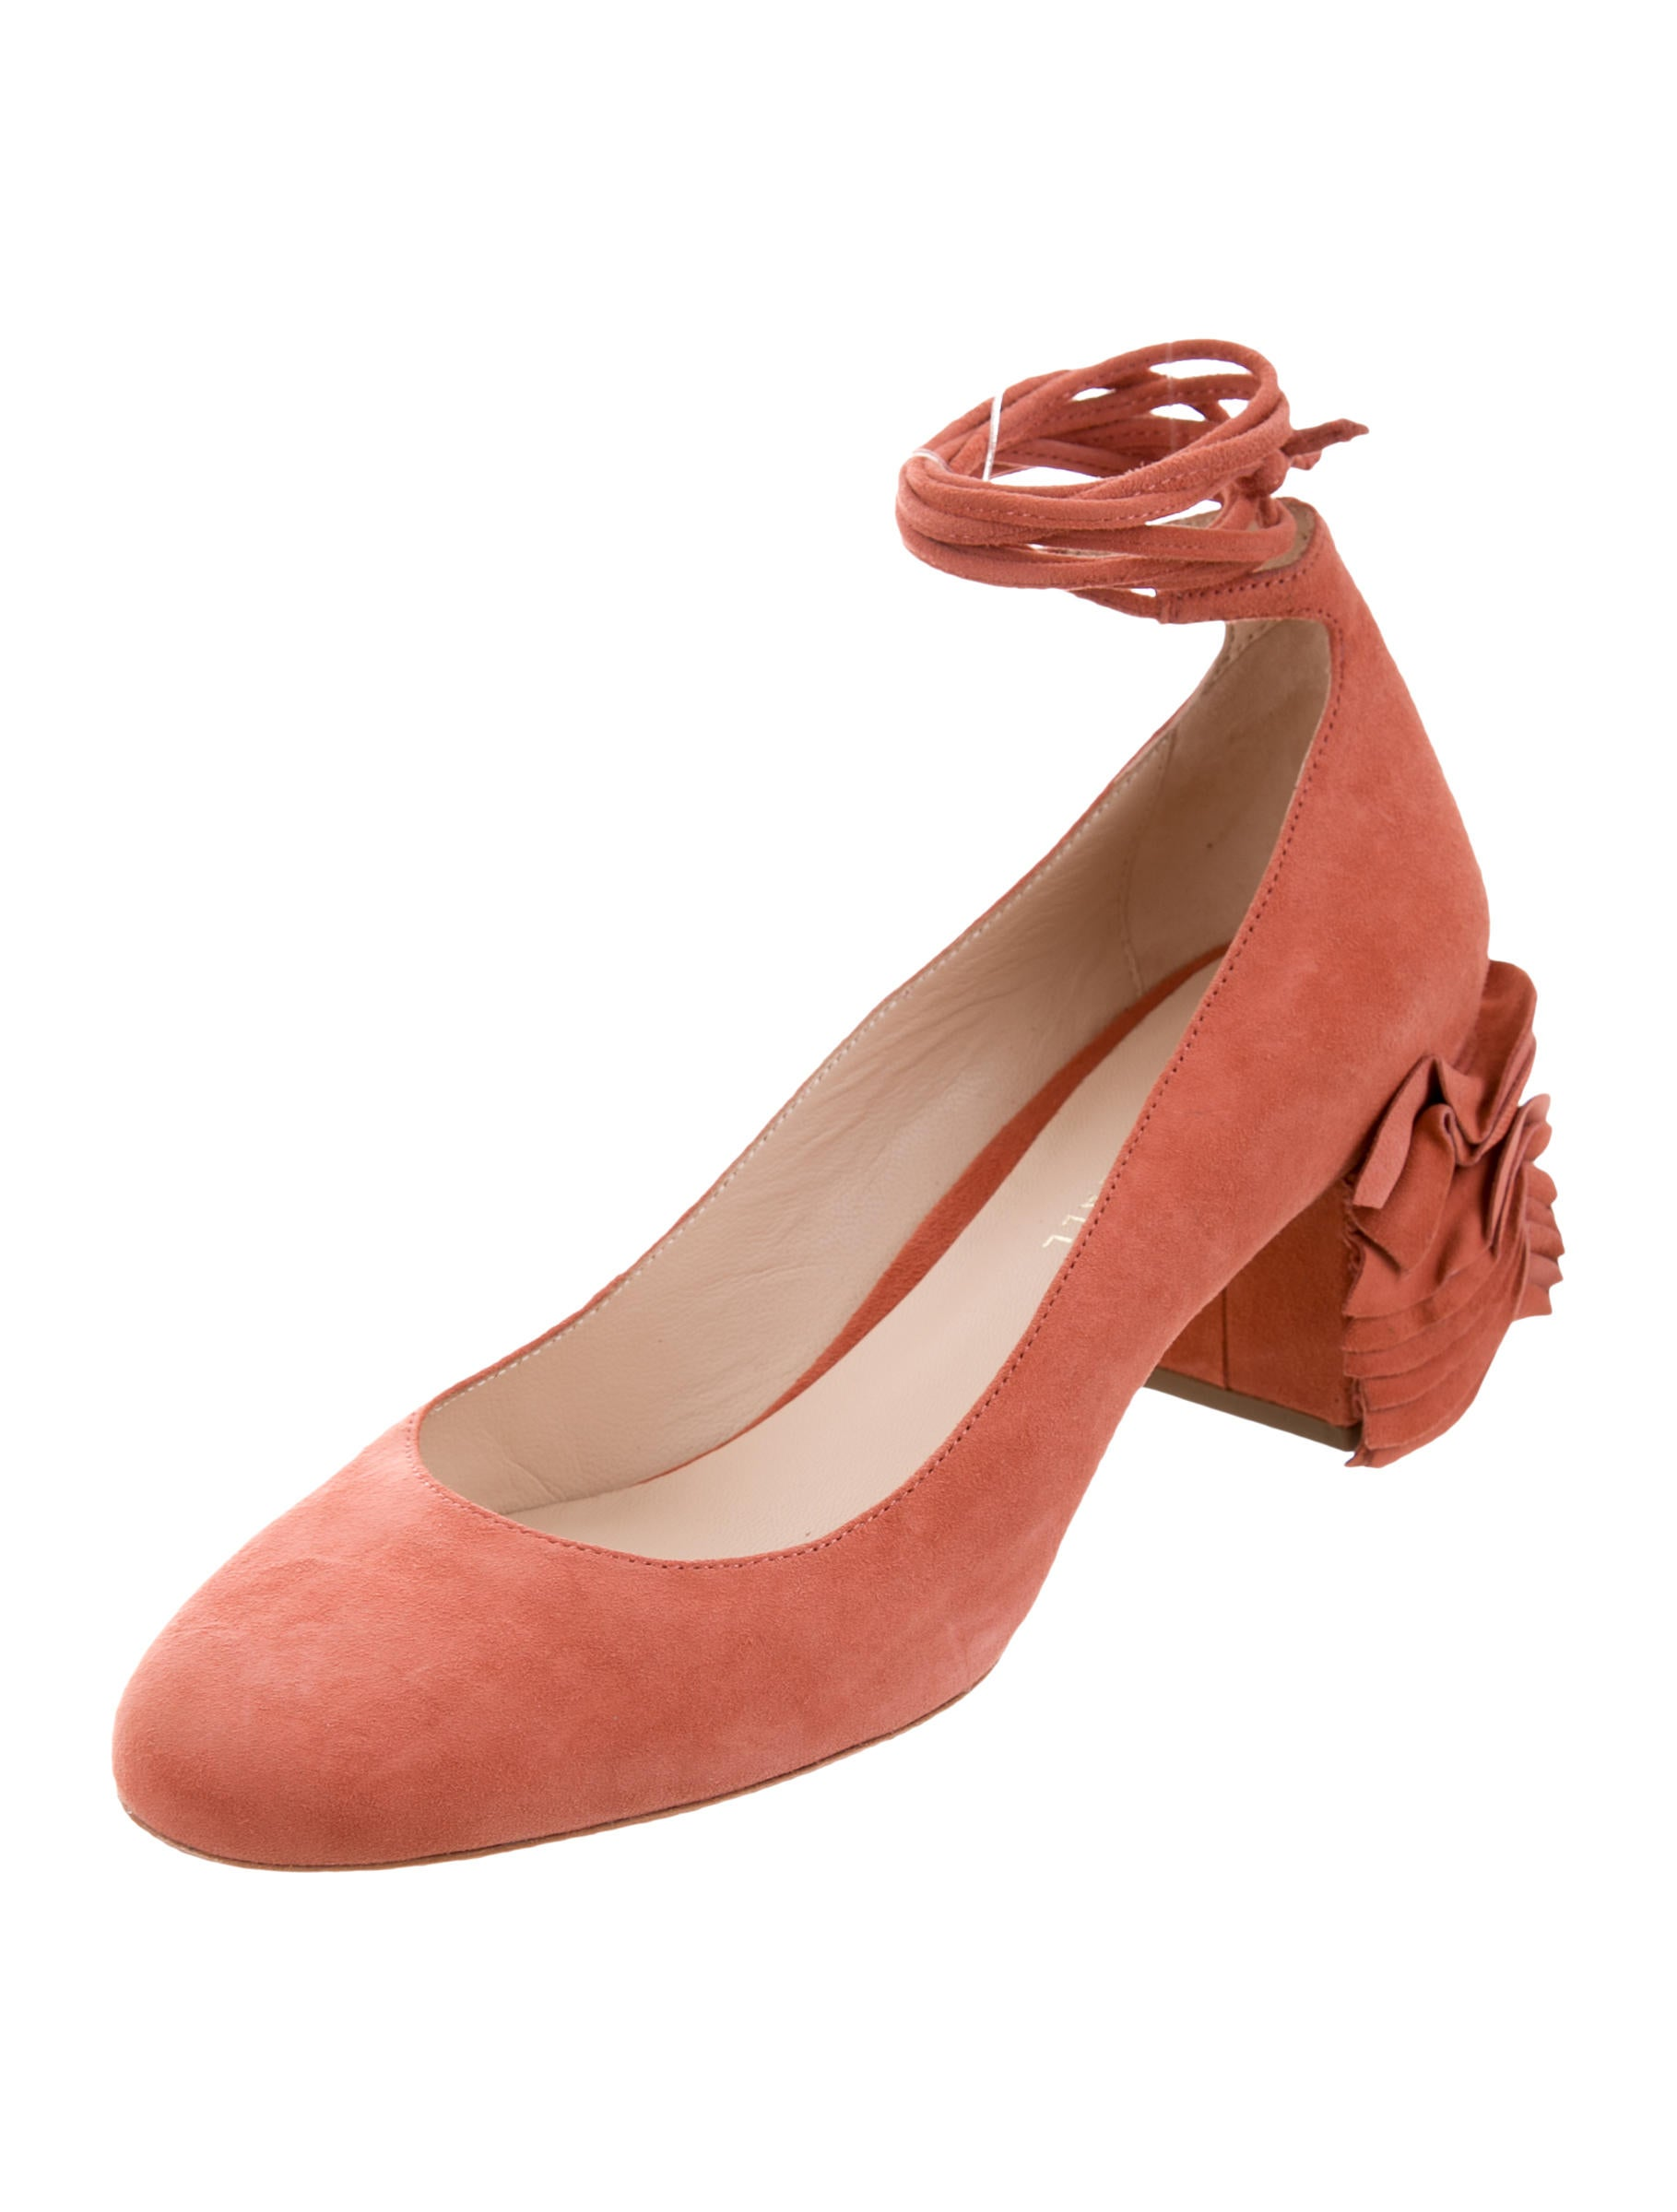 excellent for sale Loeffler Randall Ruffled Clea Pumps w/ Tags best seller for sale nicekicks online sale outlet locations outlet excellent zUlRnO8